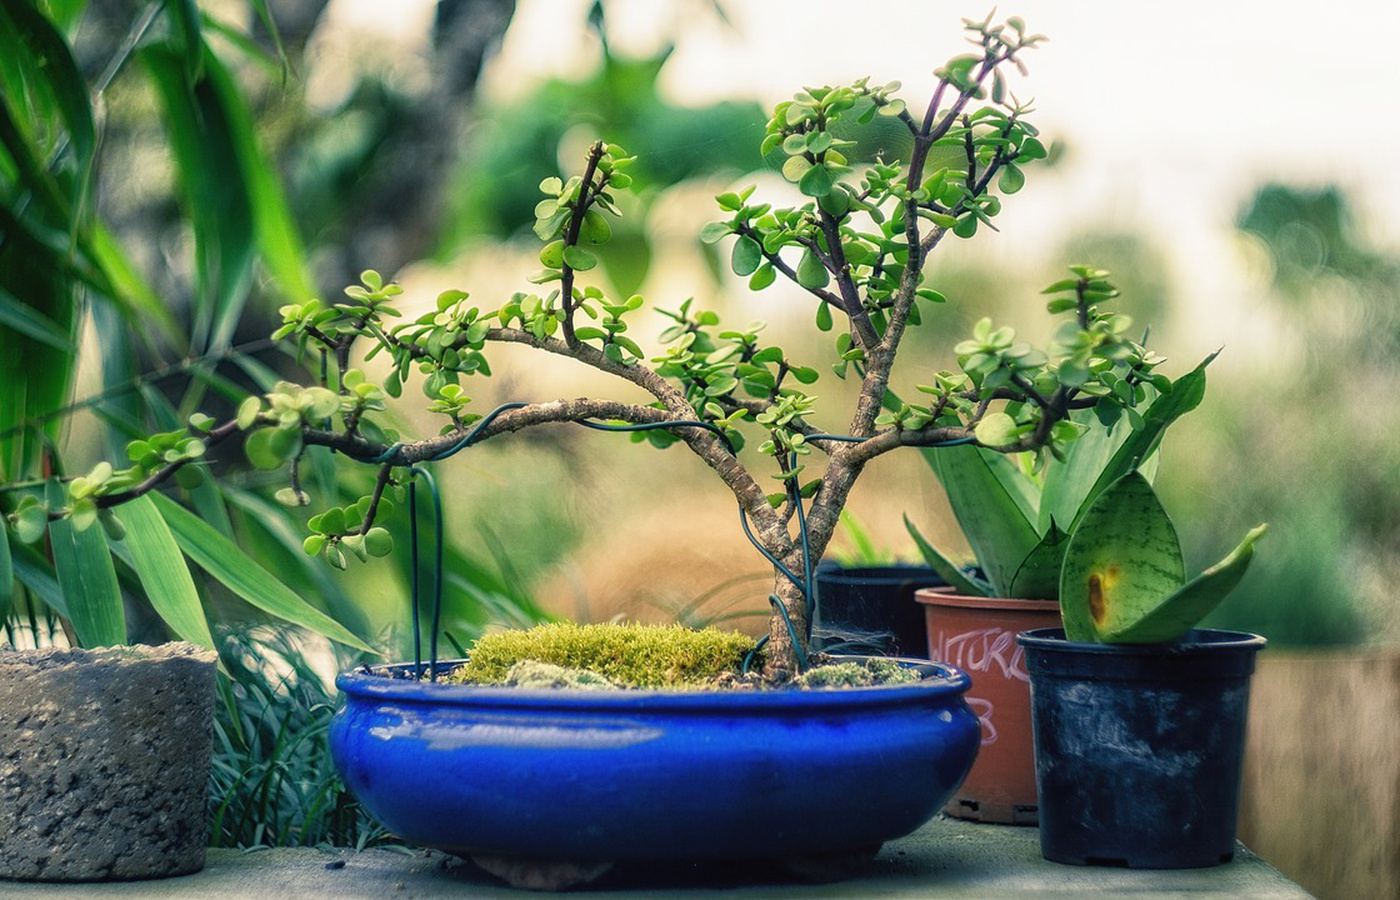 The Most Expensive Bonsai Trees You Can Buy